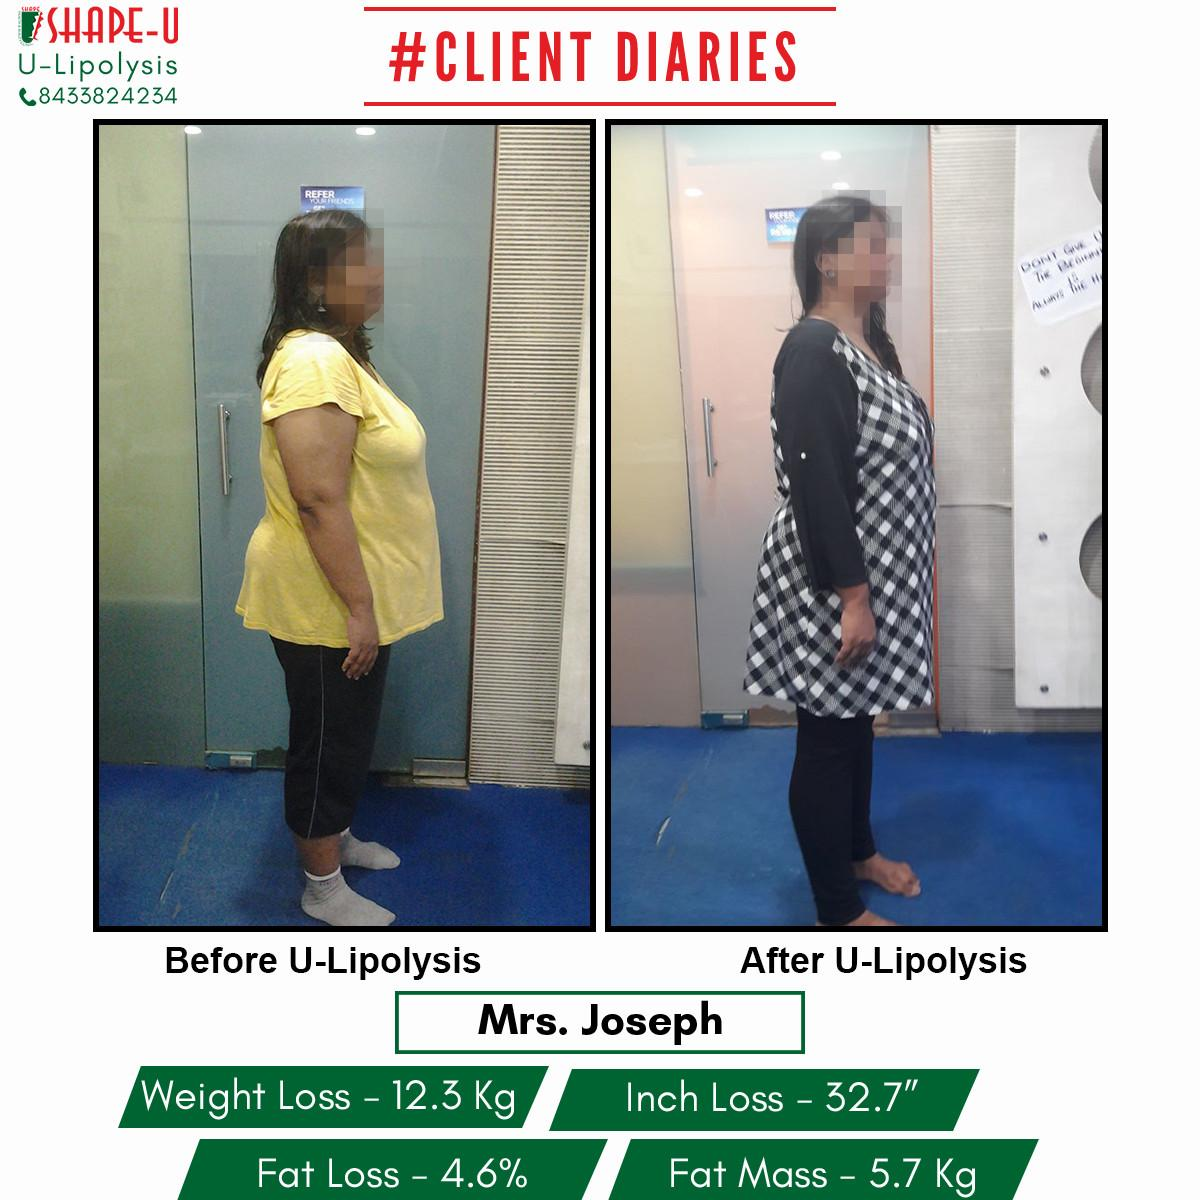 obesity clinic in mumbai weight loss clinic slimming centers in mumbai weight loss program in mumbai tighten loose stomach skin tighten loose stomach skin skin tightening treatment face tightening neck tightening